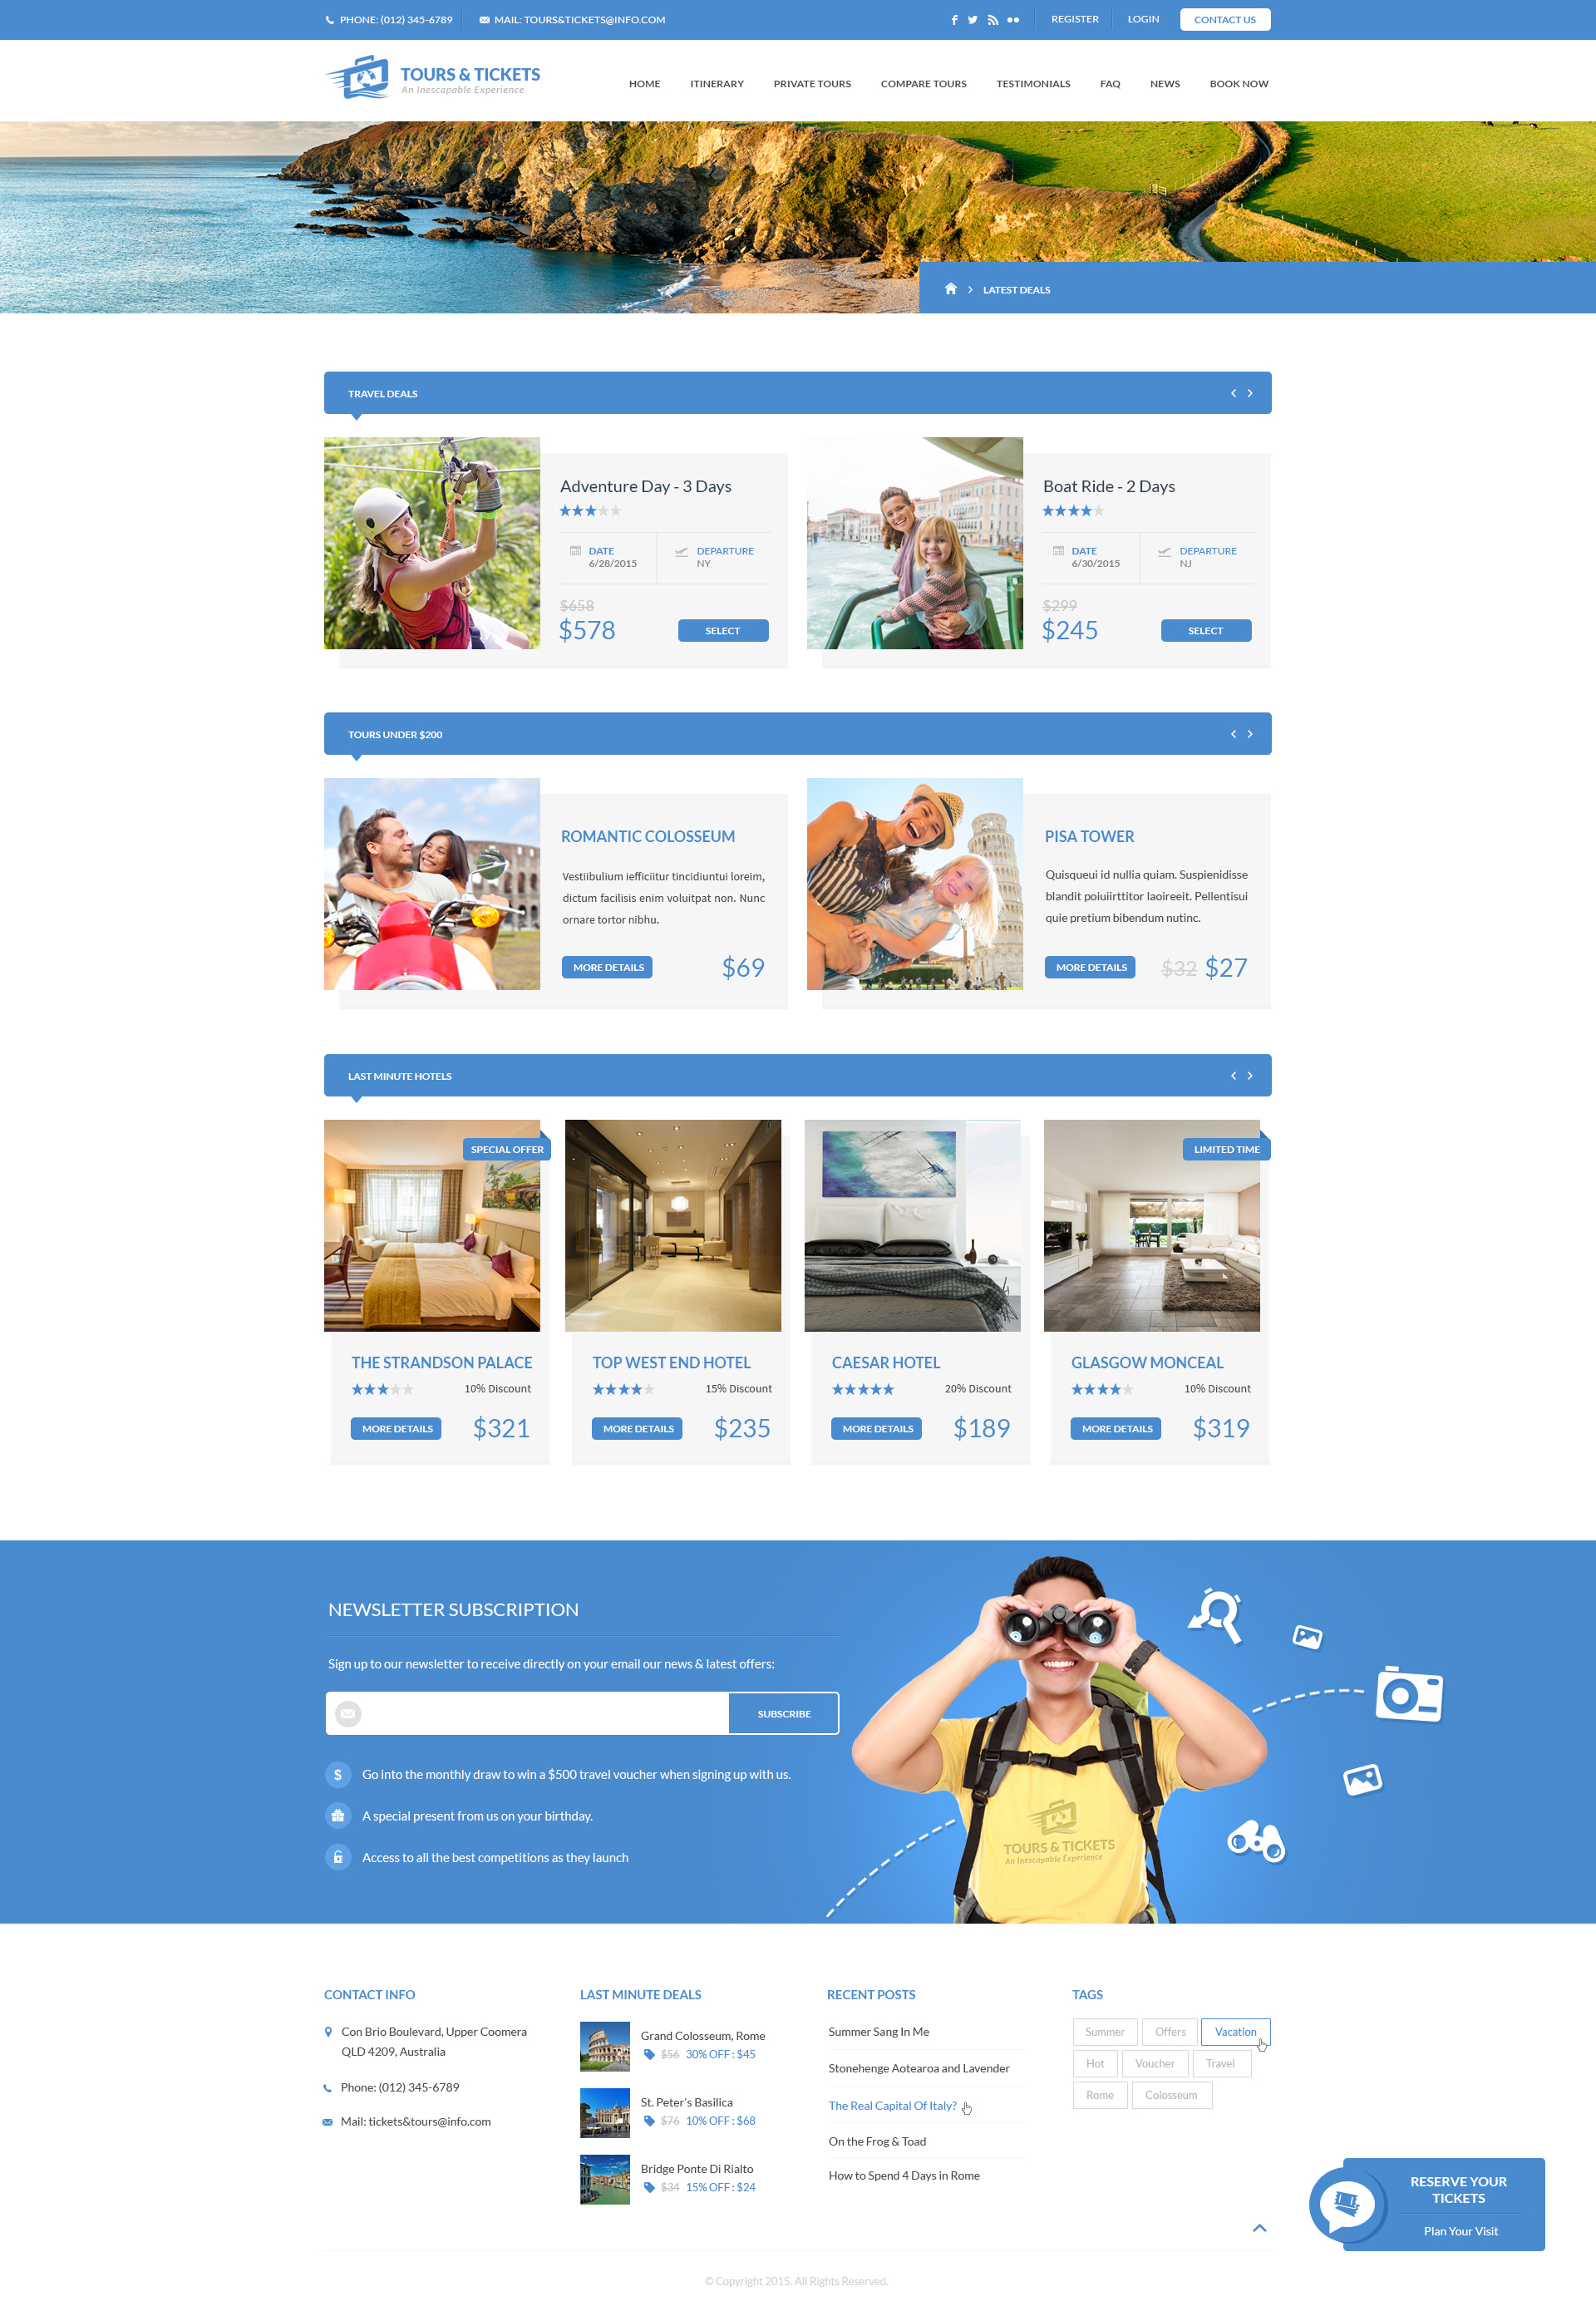 Tours & Tickets - HTML Template by ThemePlayers | ThemeForest